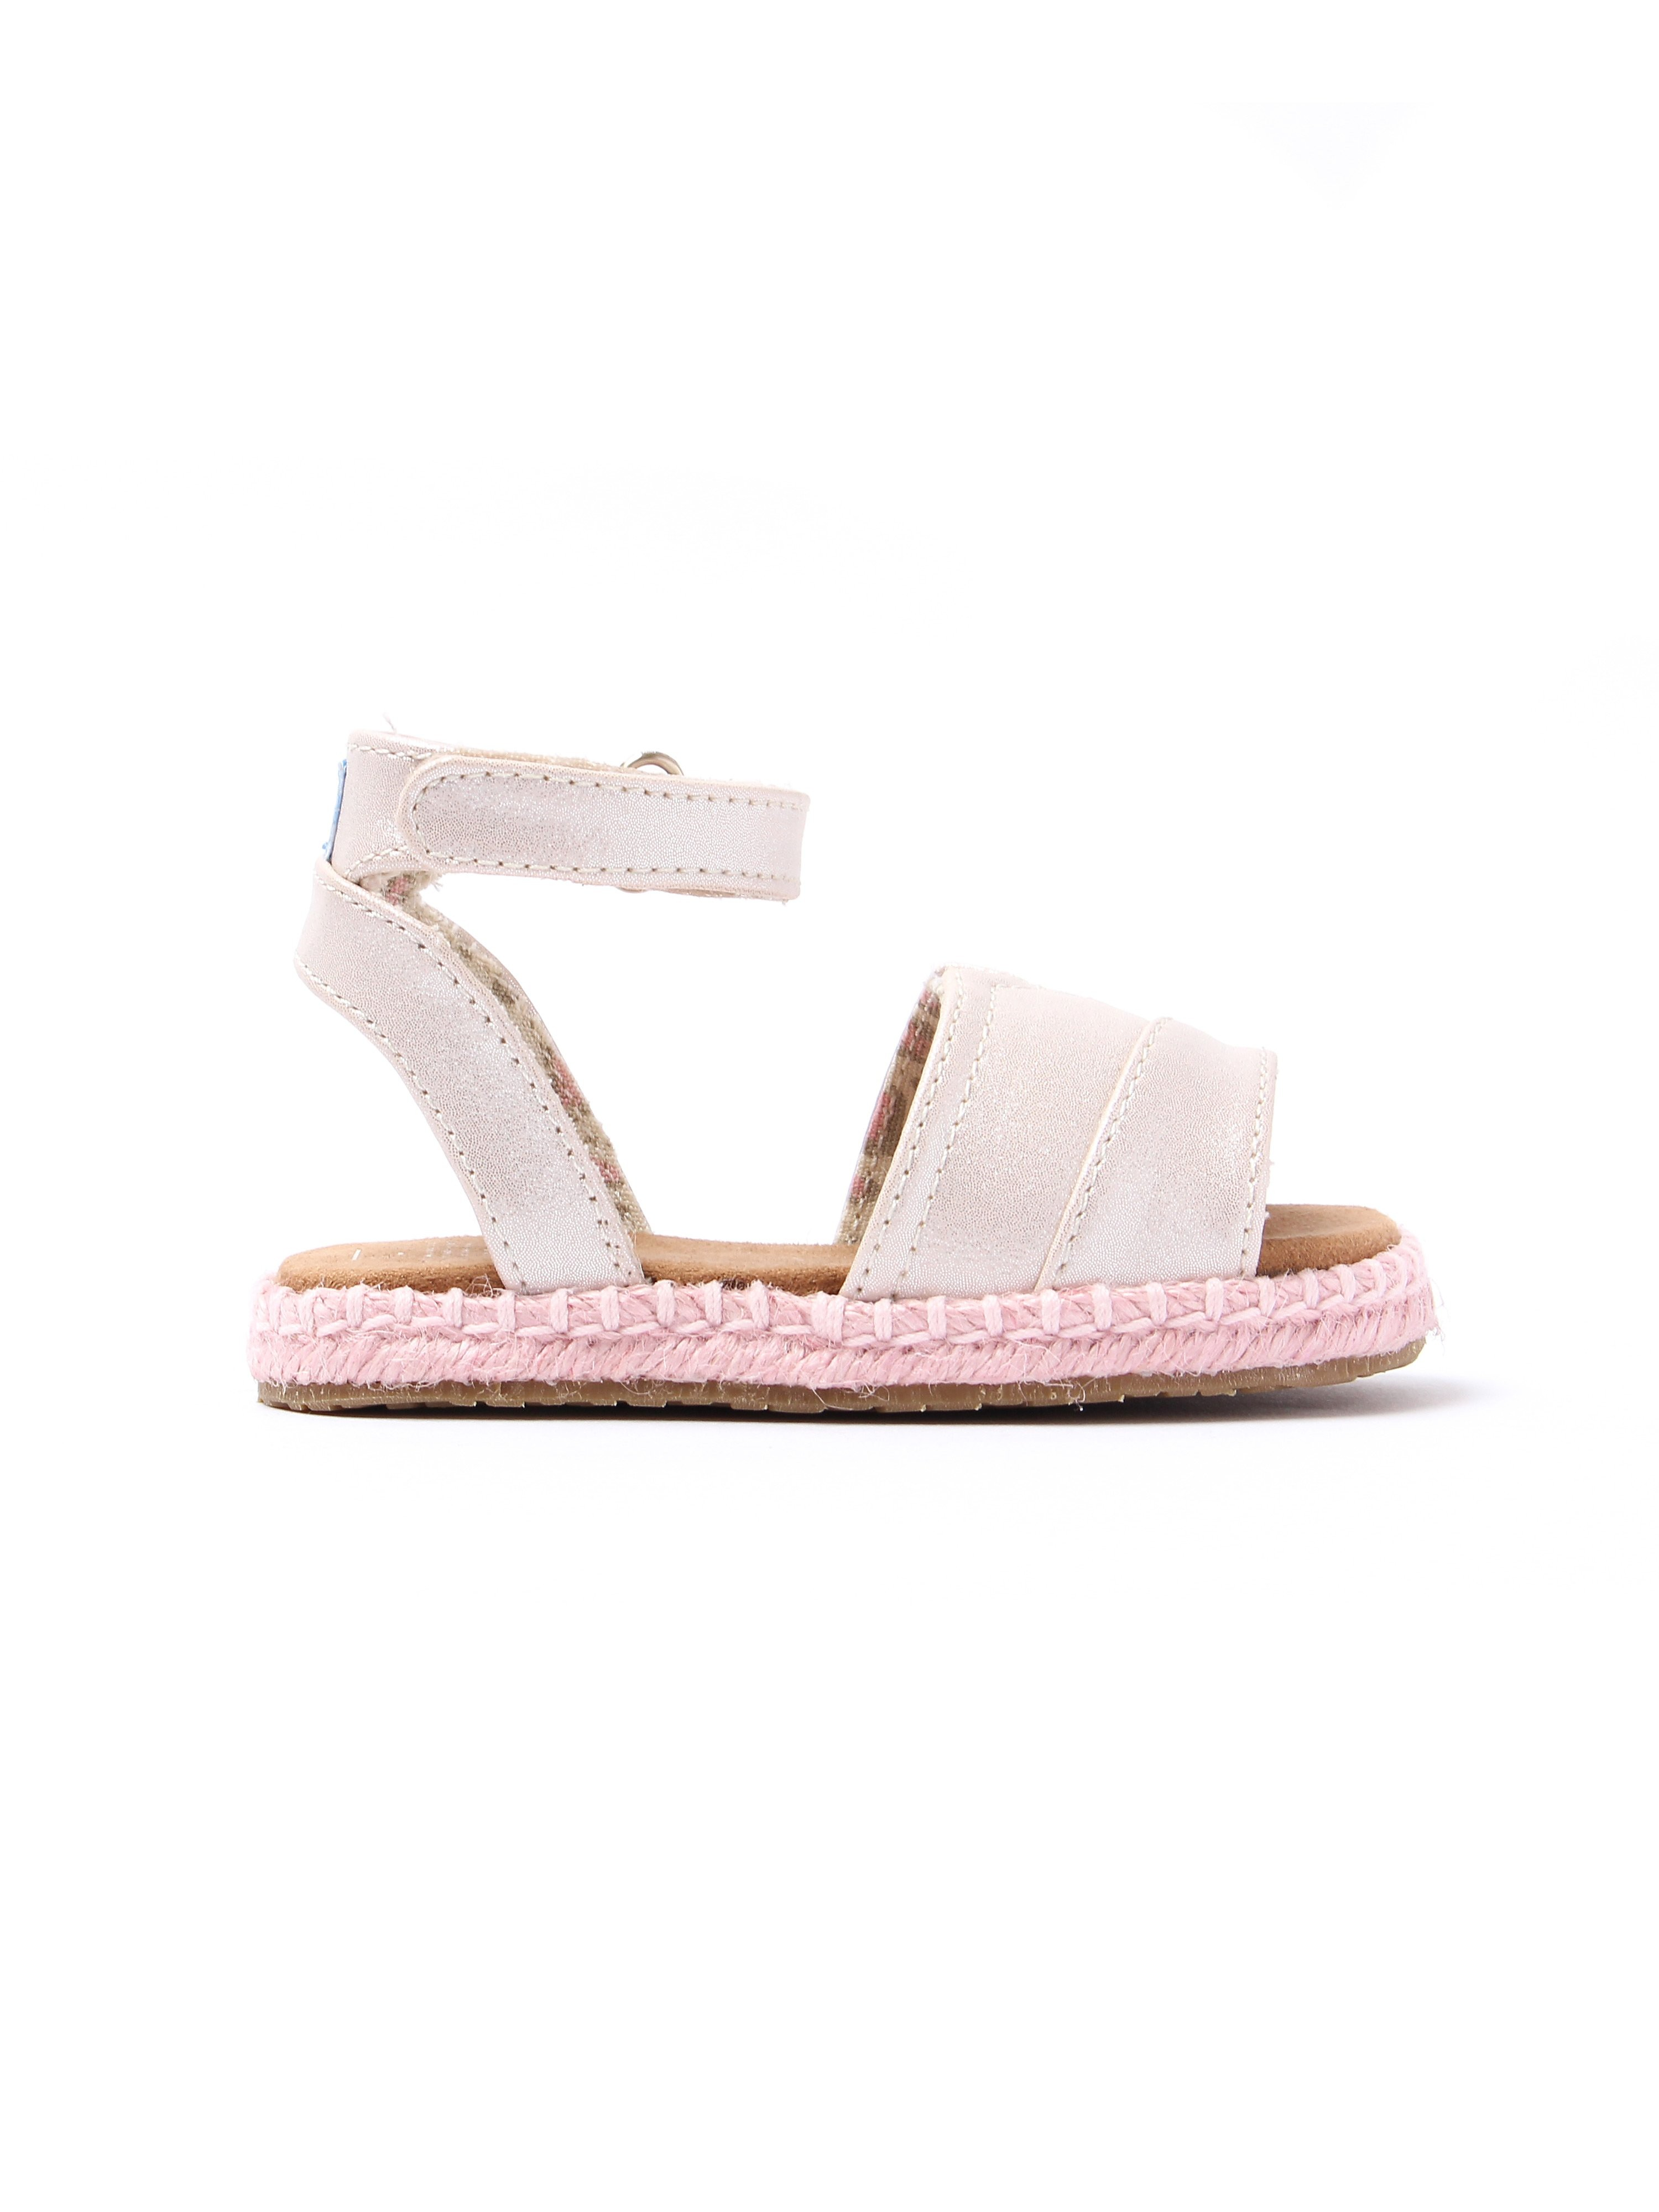 Toms Infant Malea Shimmer Canvas Sandals - Pale Gold & Pink